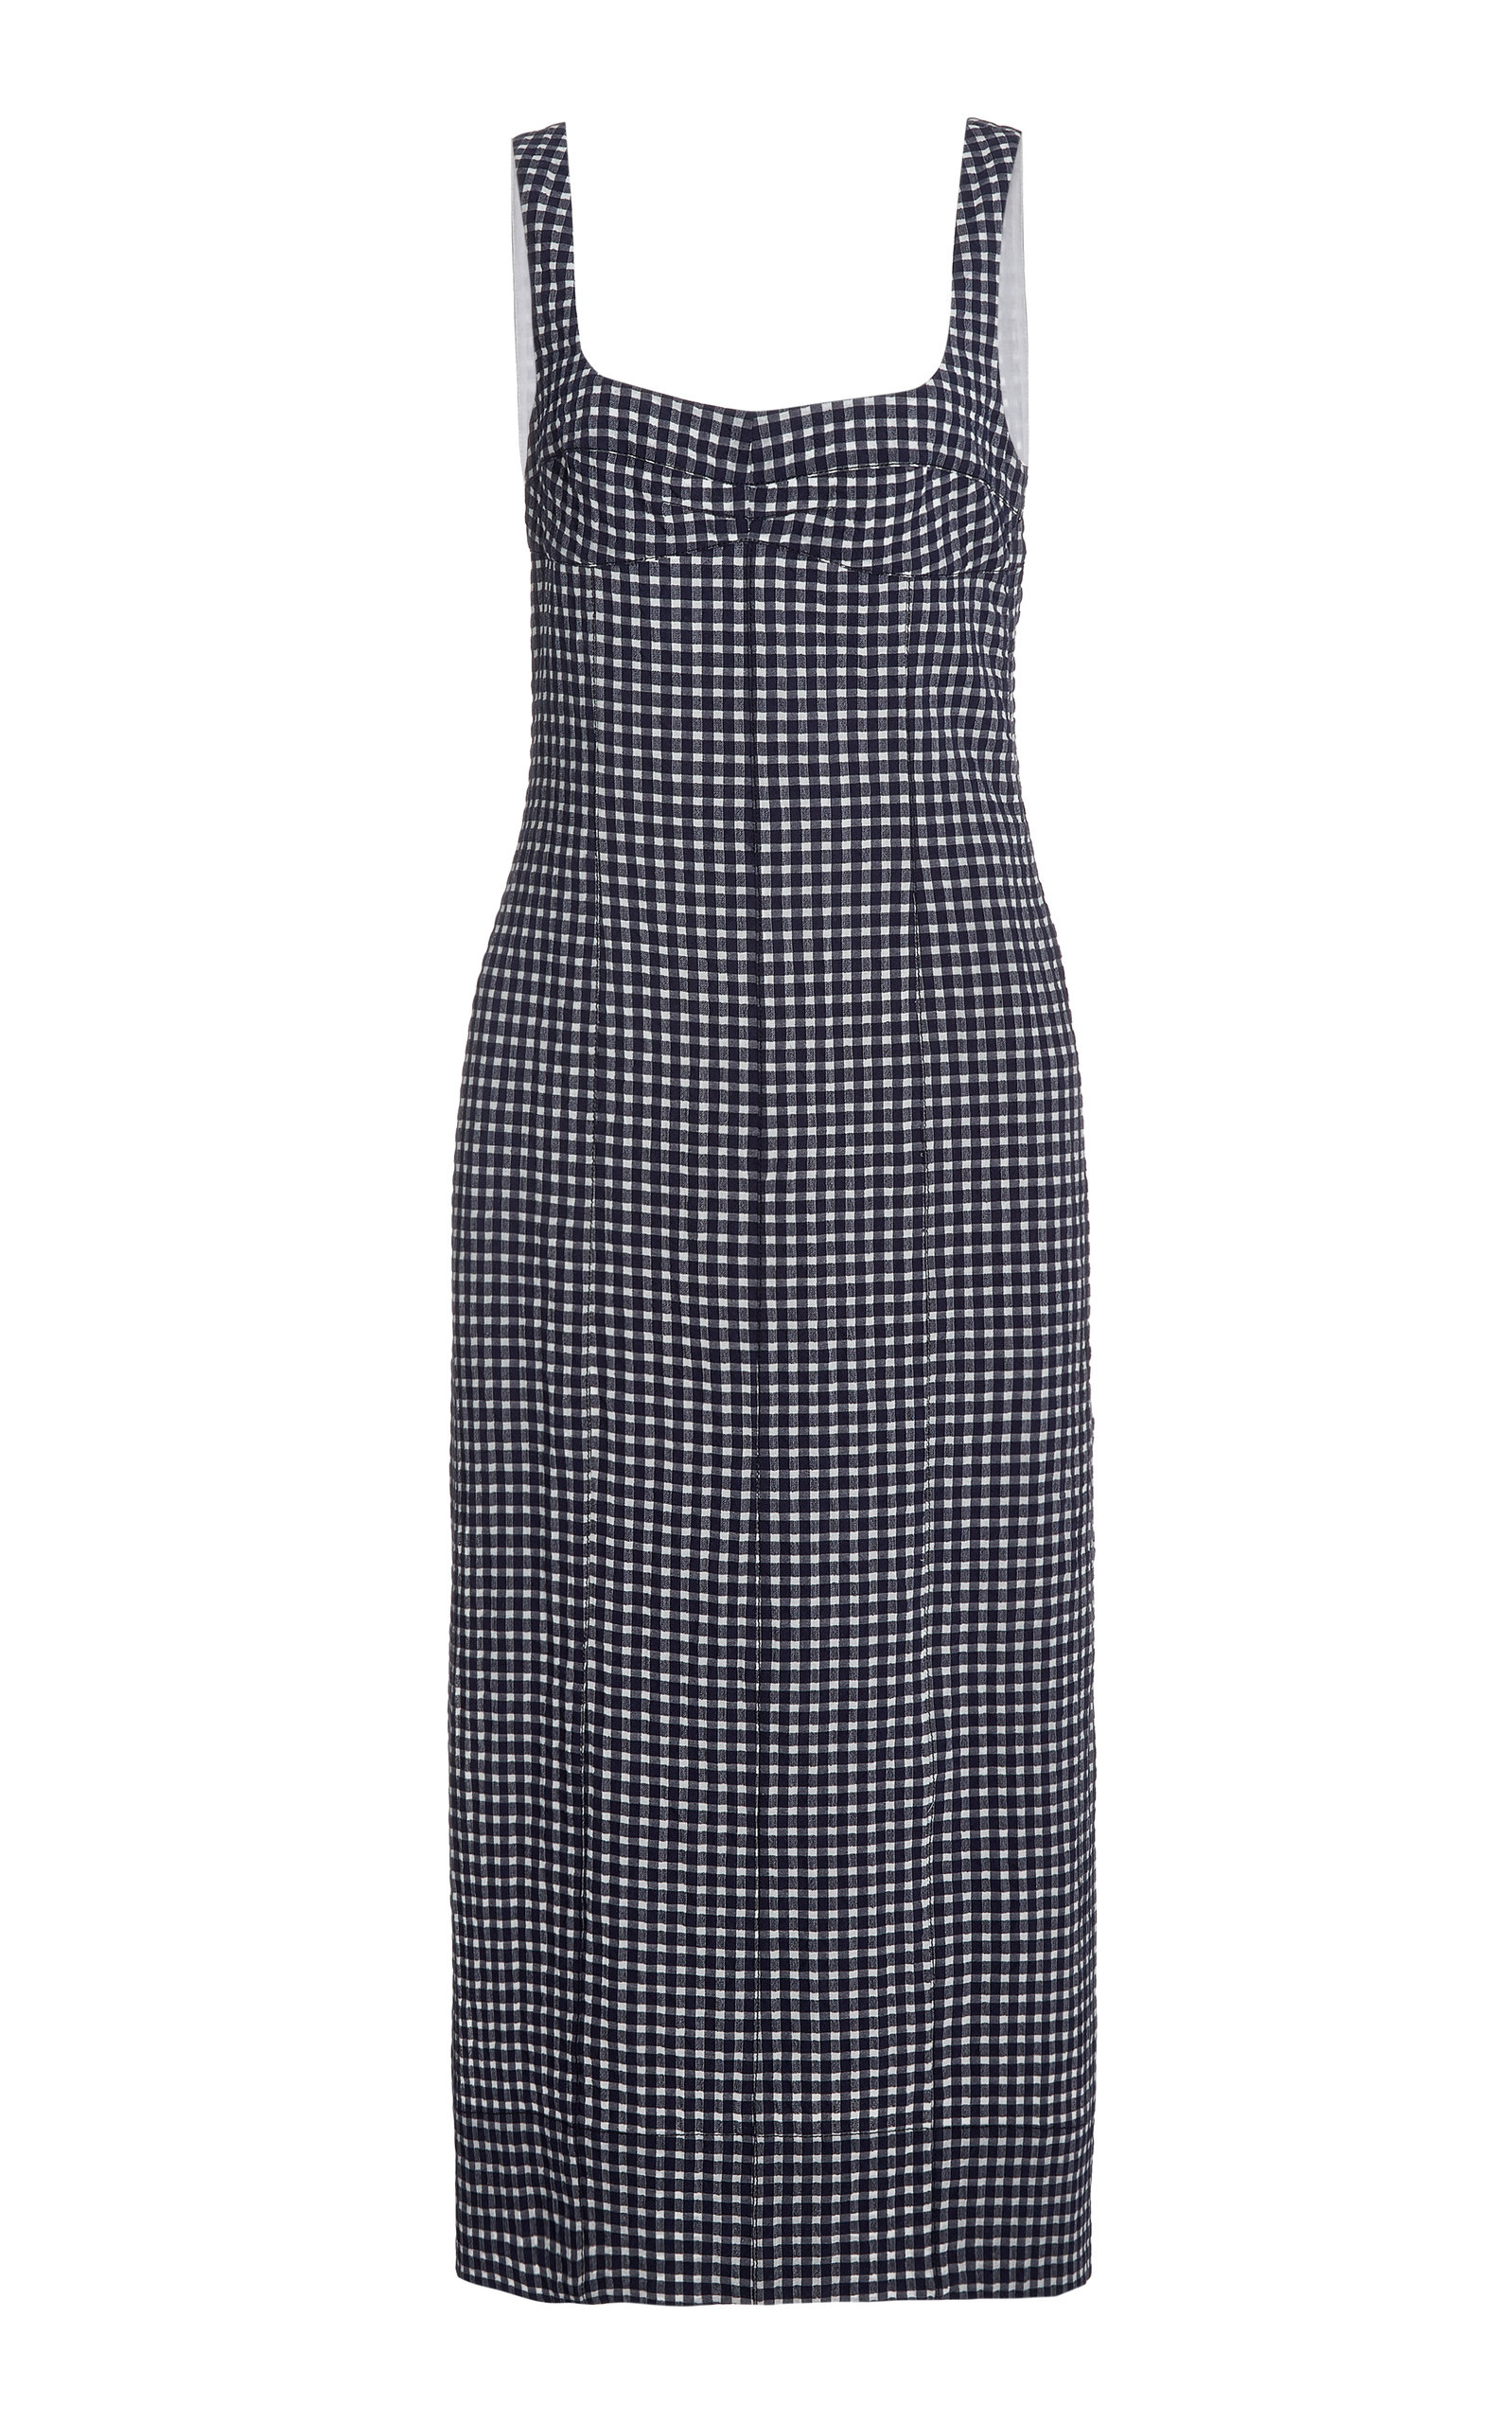 Buy Three Graces London Tomasina Gingham Cotton Dress online, shop Three Graces London at the best price